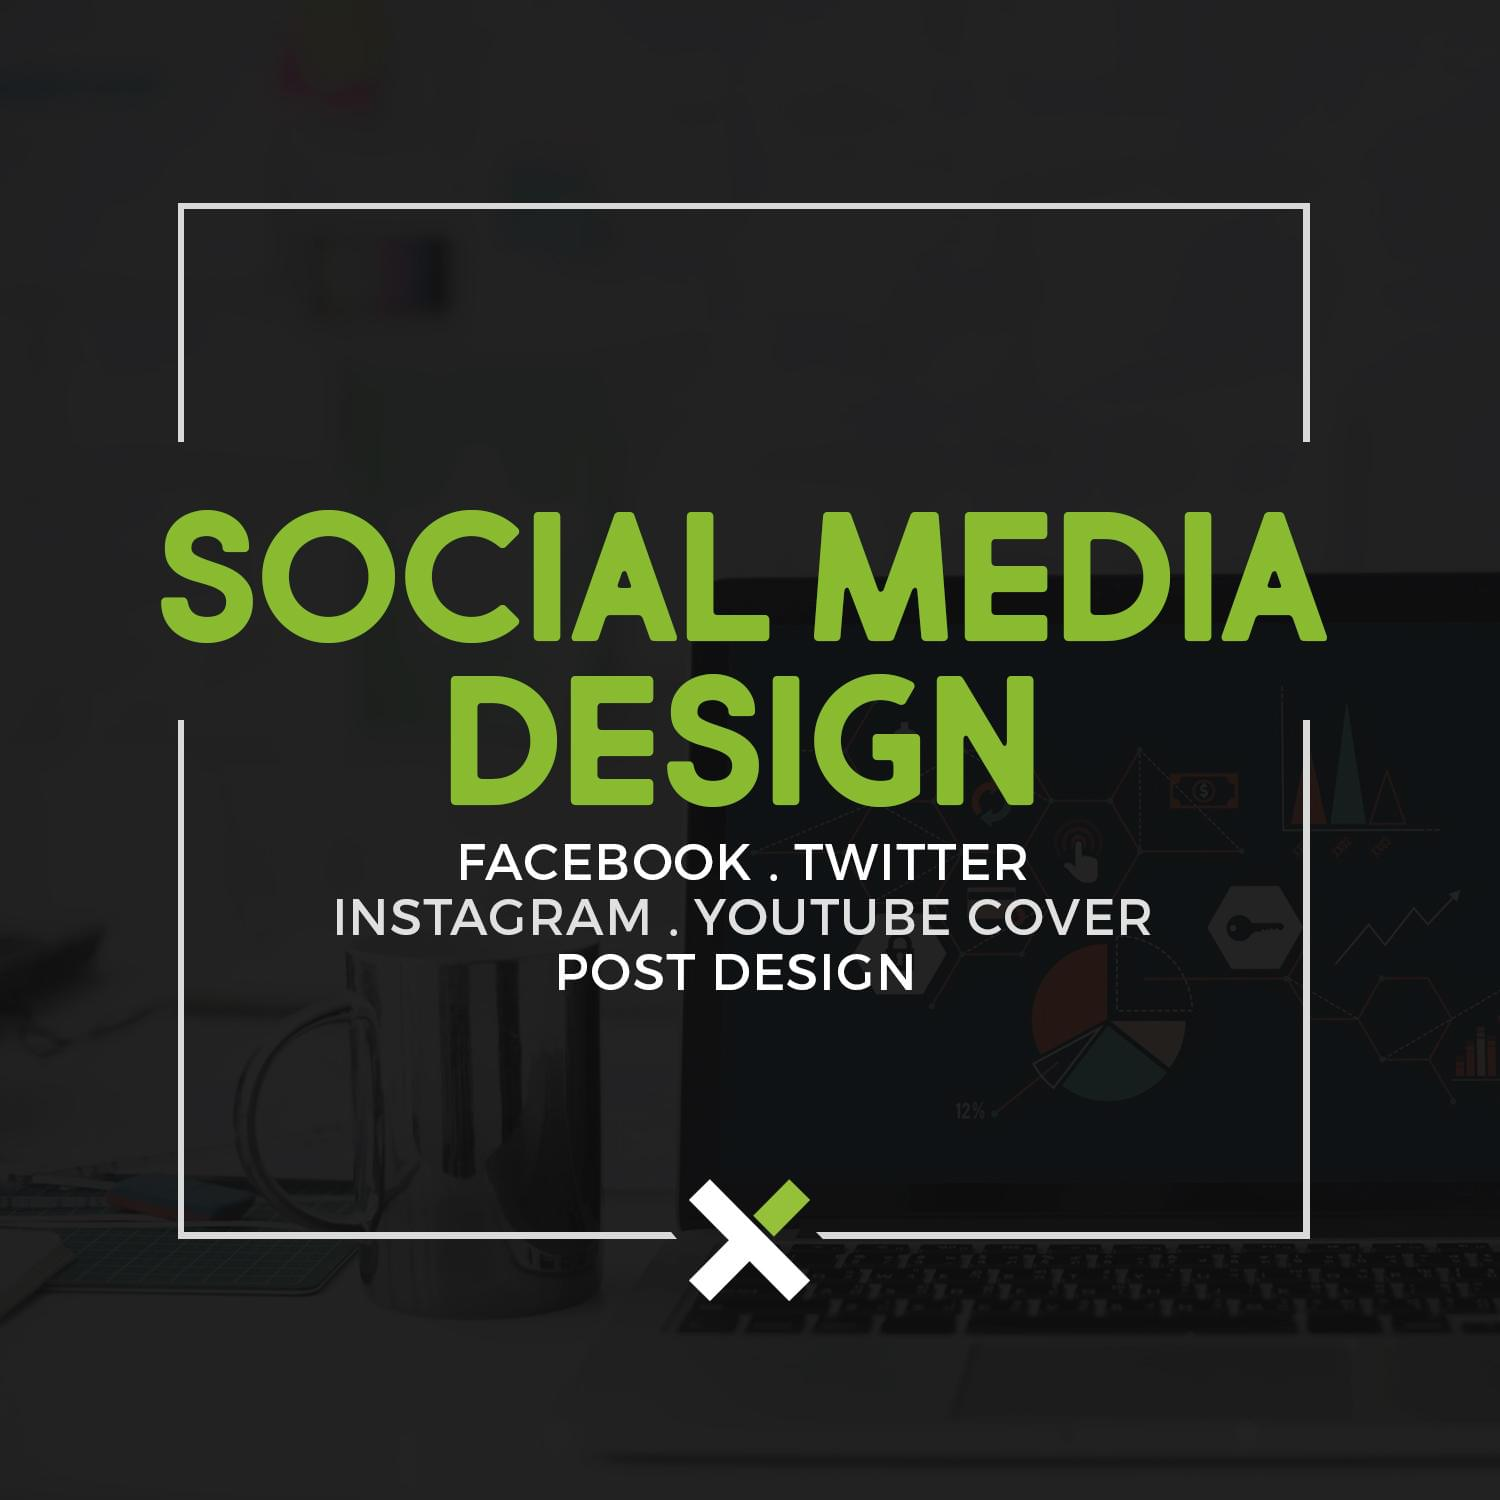 Custom Design For The Social Media Of Your Choice: Facebook, Twitter, Instagram, Youtube, LinkedIn by touringxx - 114808